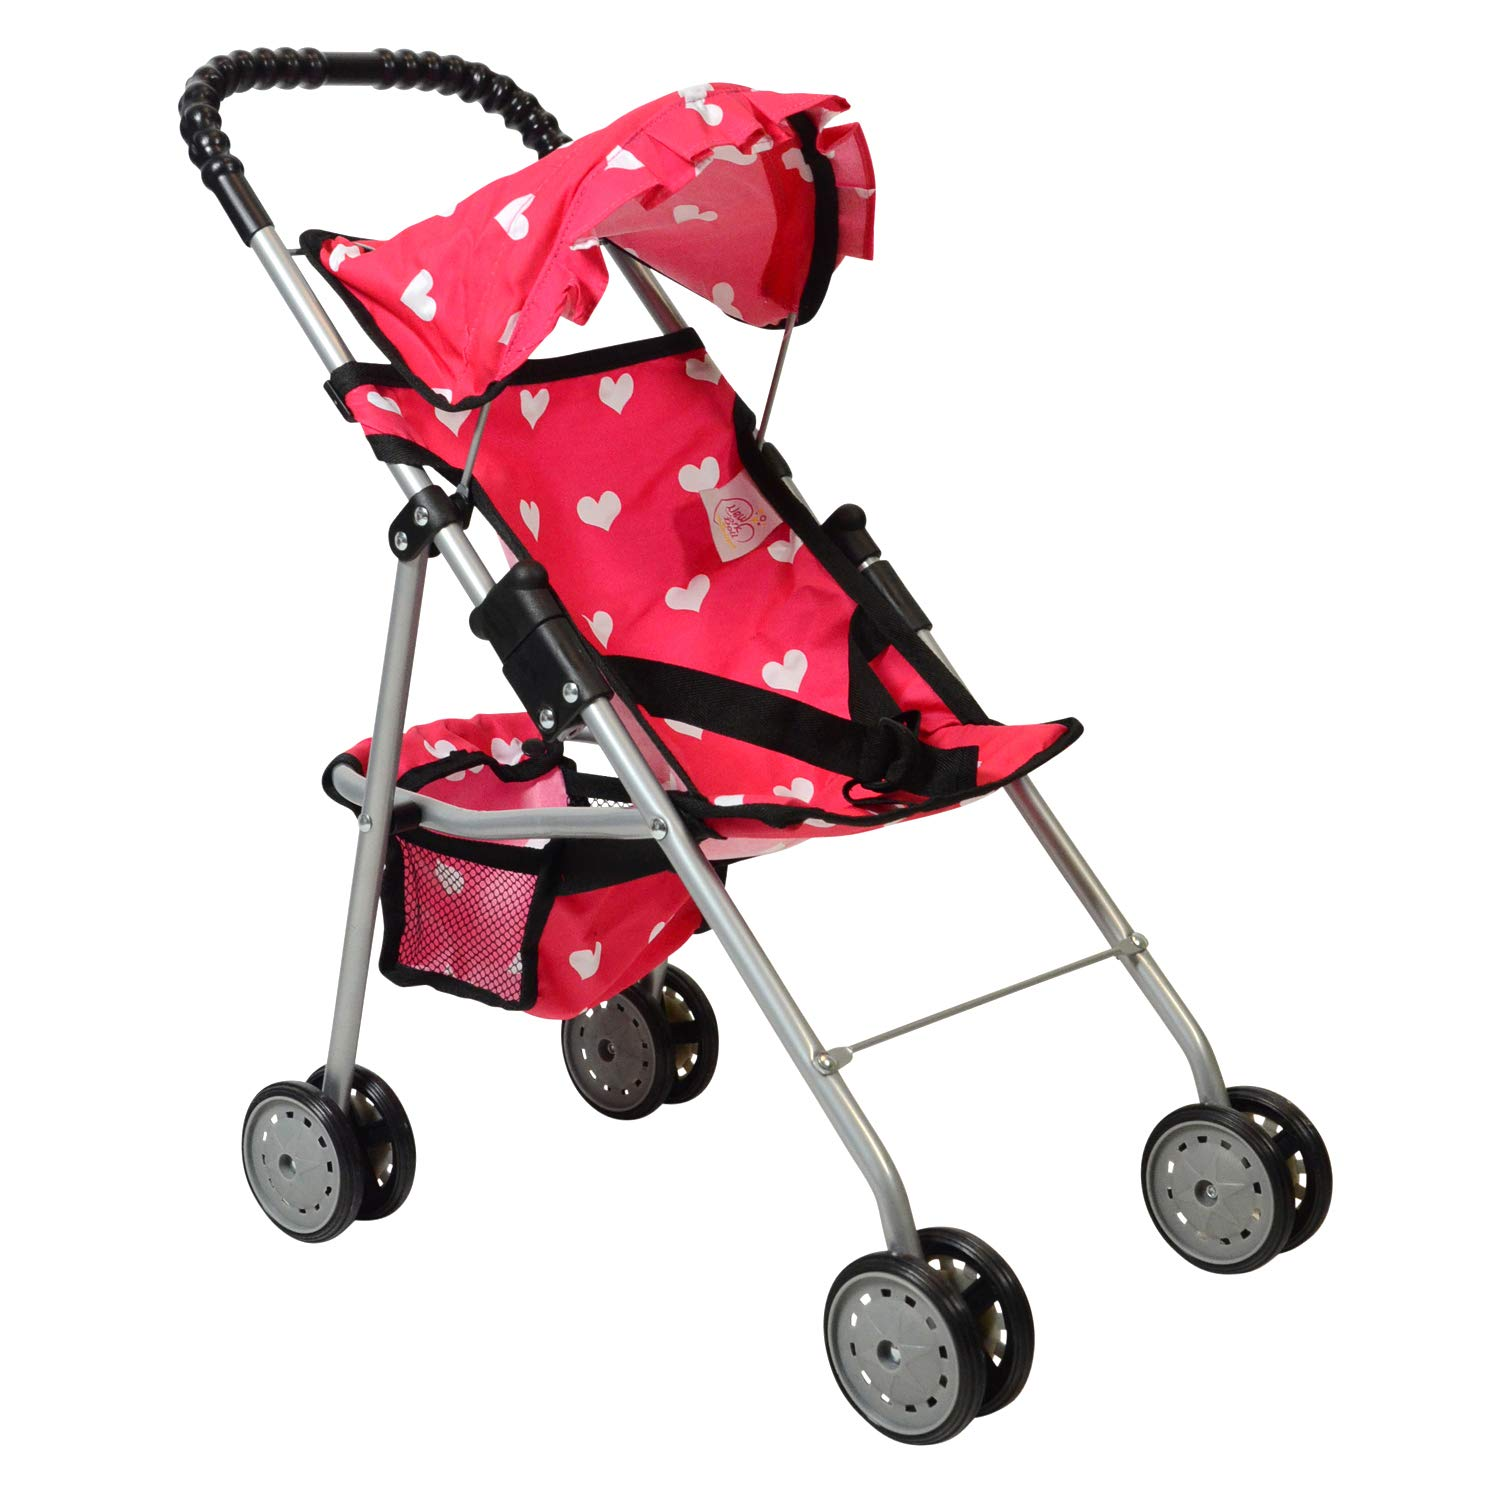 The New York Doll Collection My First Doll Stroller with Basket & Heart Design Foldable Doll Stroller, Pink by The New York Doll Collection